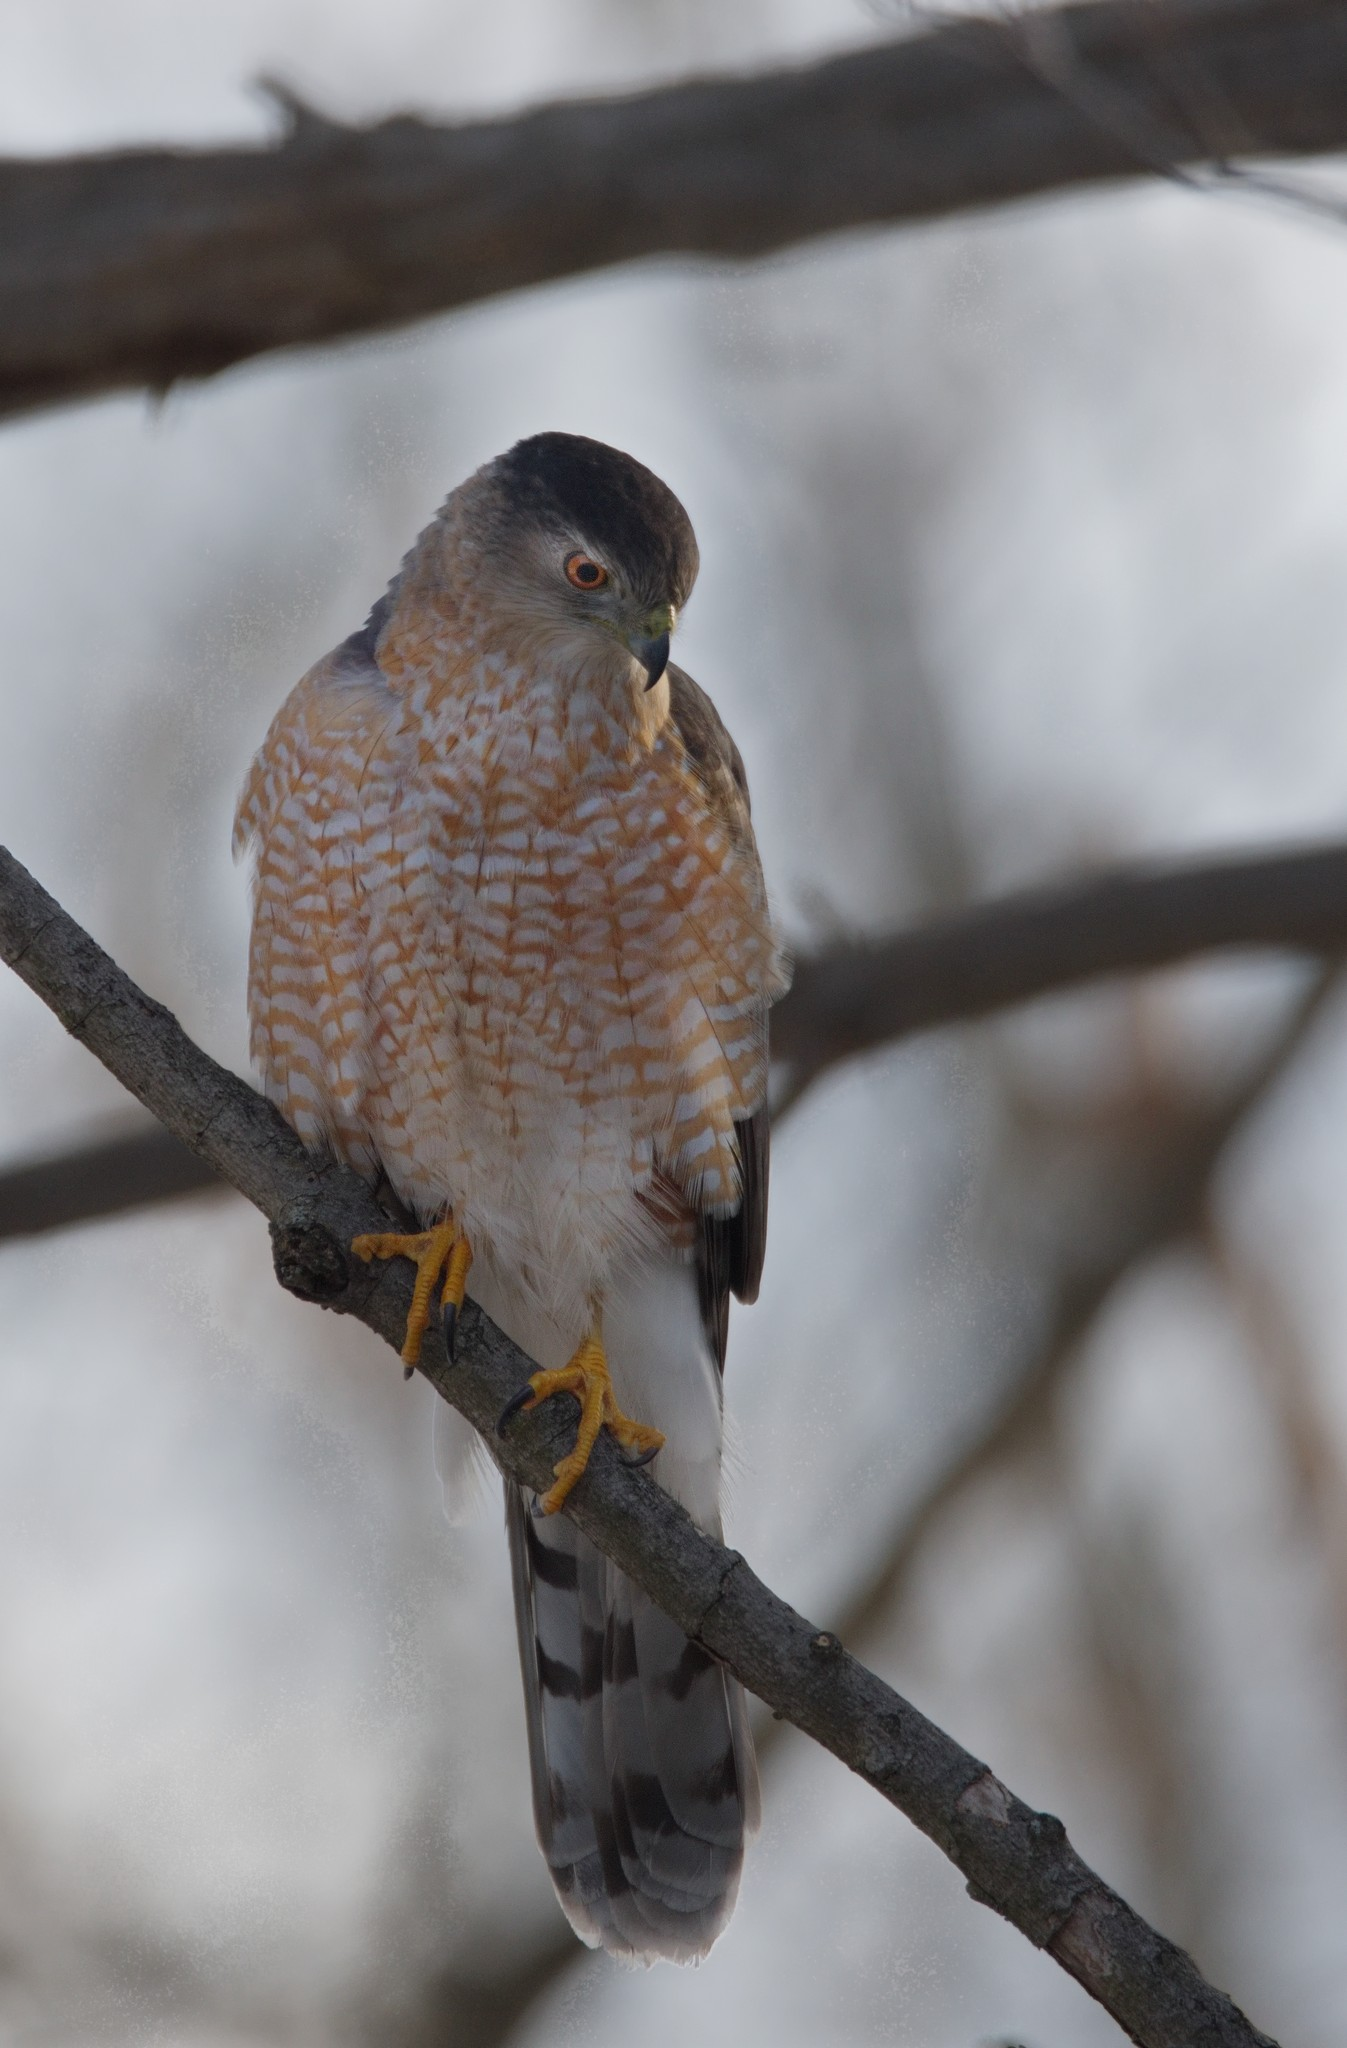 Sharp-Shinned Hawk - Taken in the Wilds of Pennsylvania by Buckmaster